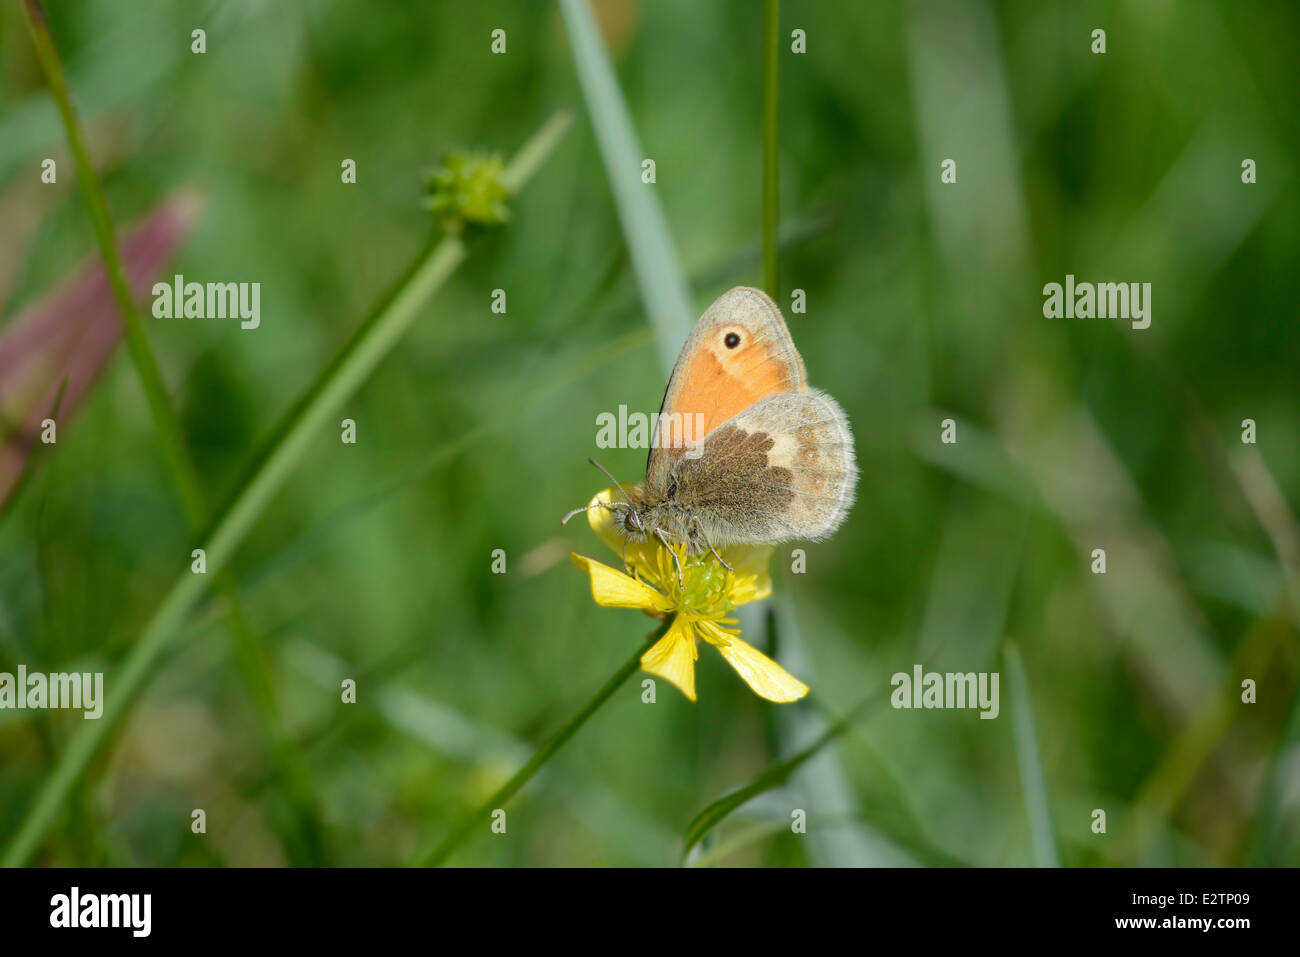 Small heath (Coenonympha pamphilus). Adult butterfly on a buttercup. - Stock Image